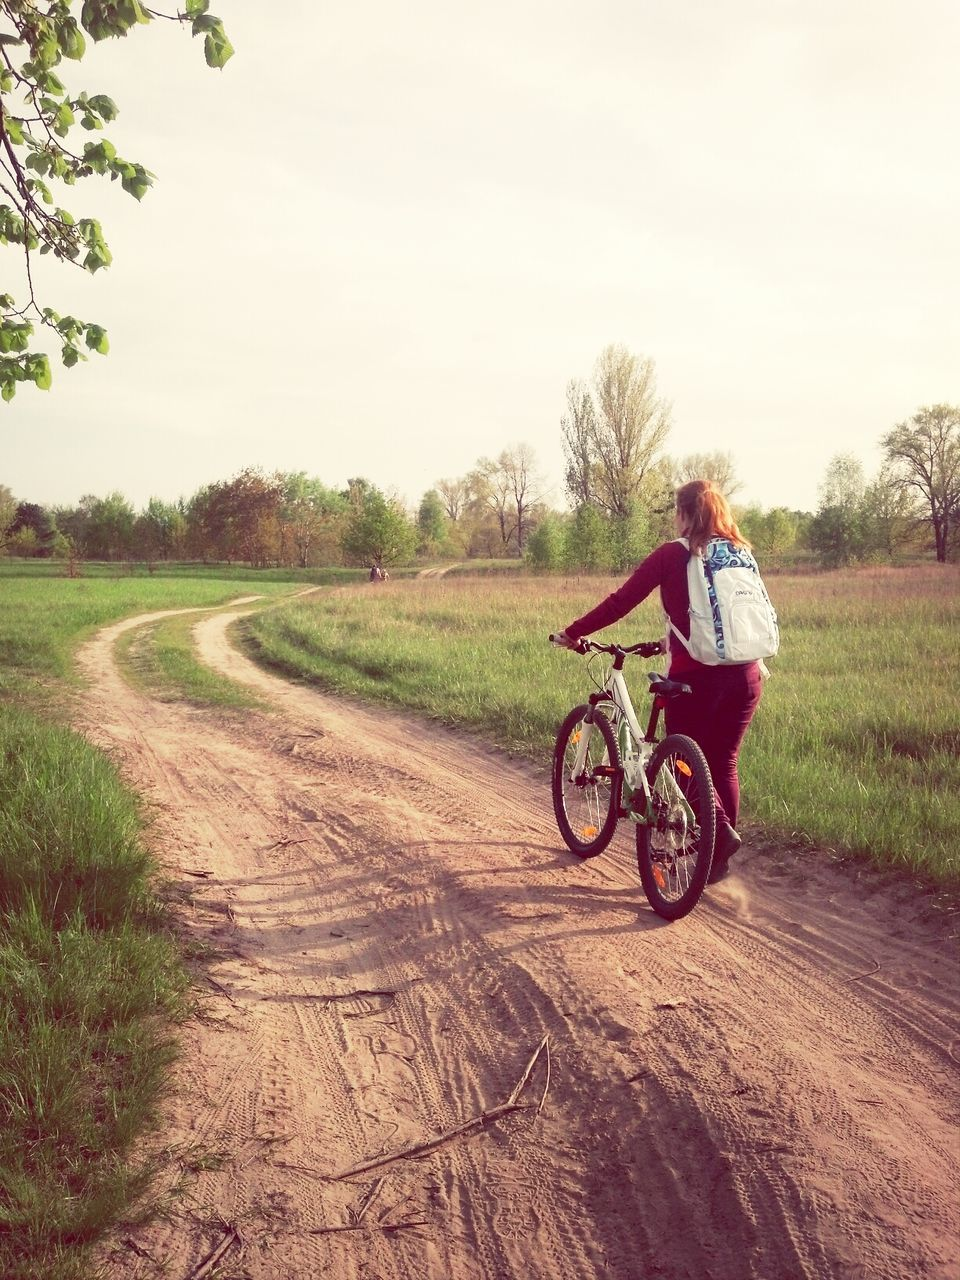 real people, one person, full length, transportation, lifestyles, outdoors, leisure activity, field, day, bicycle, road, nature, tree, happiness, sky, grass